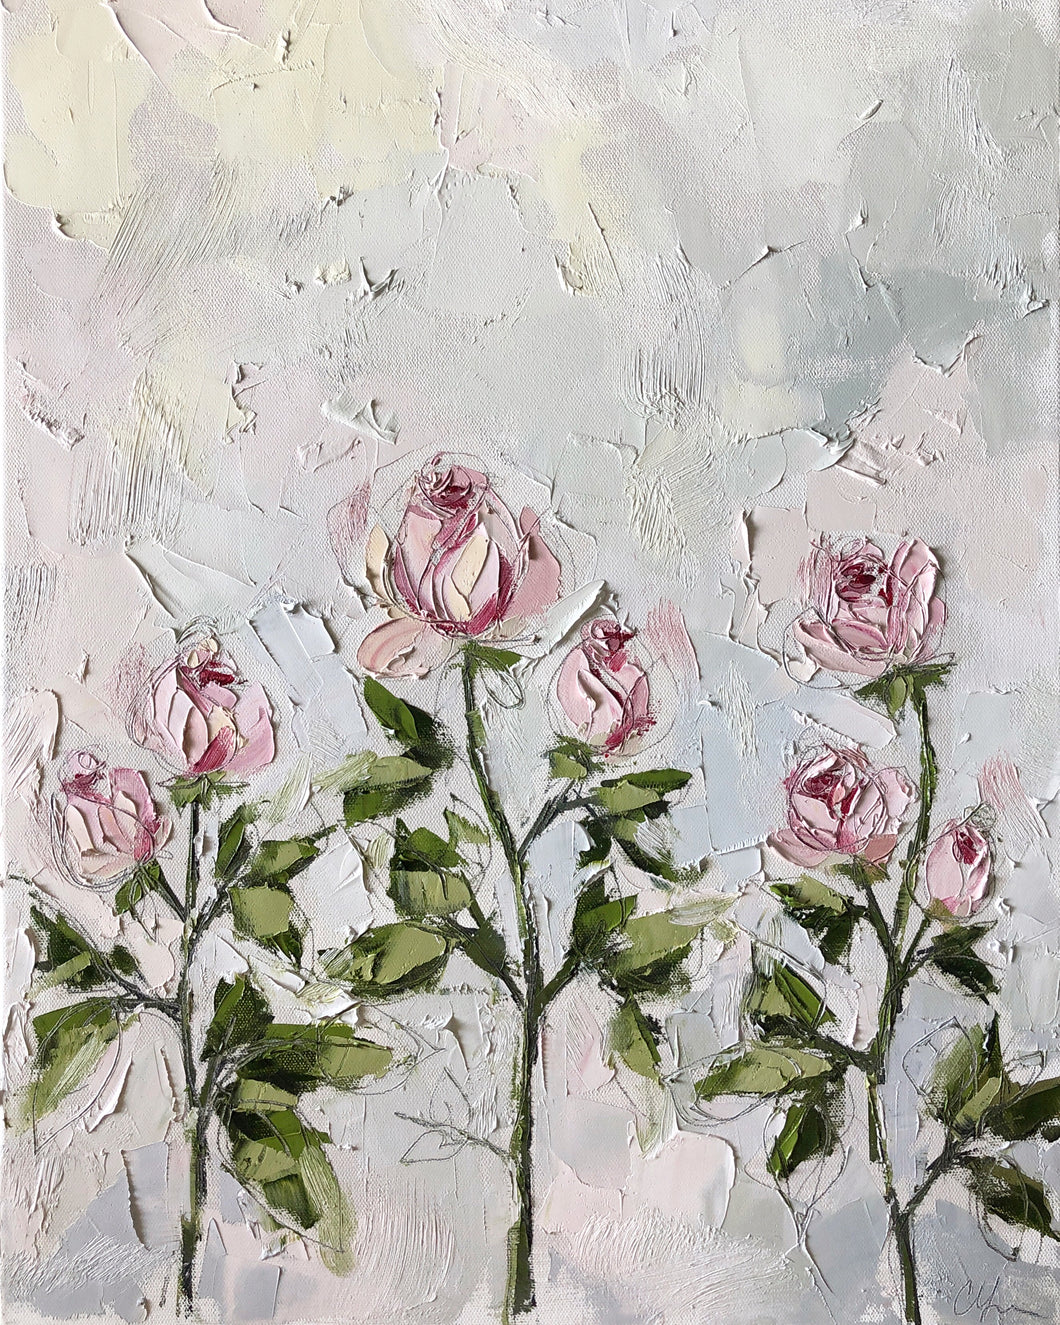 """Roses"" 24x18 Oil/Graphite on Canvas"